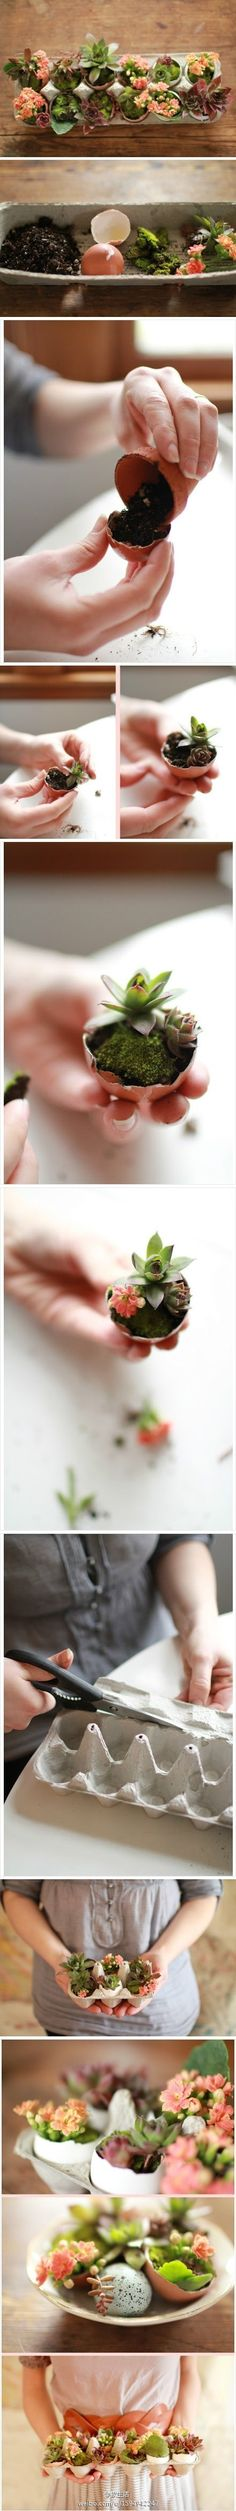 Flowers & Gardens / Egg carton succulent garden - great garden project with kids. Even with flowers, cute for Mother's Day! by murtsss